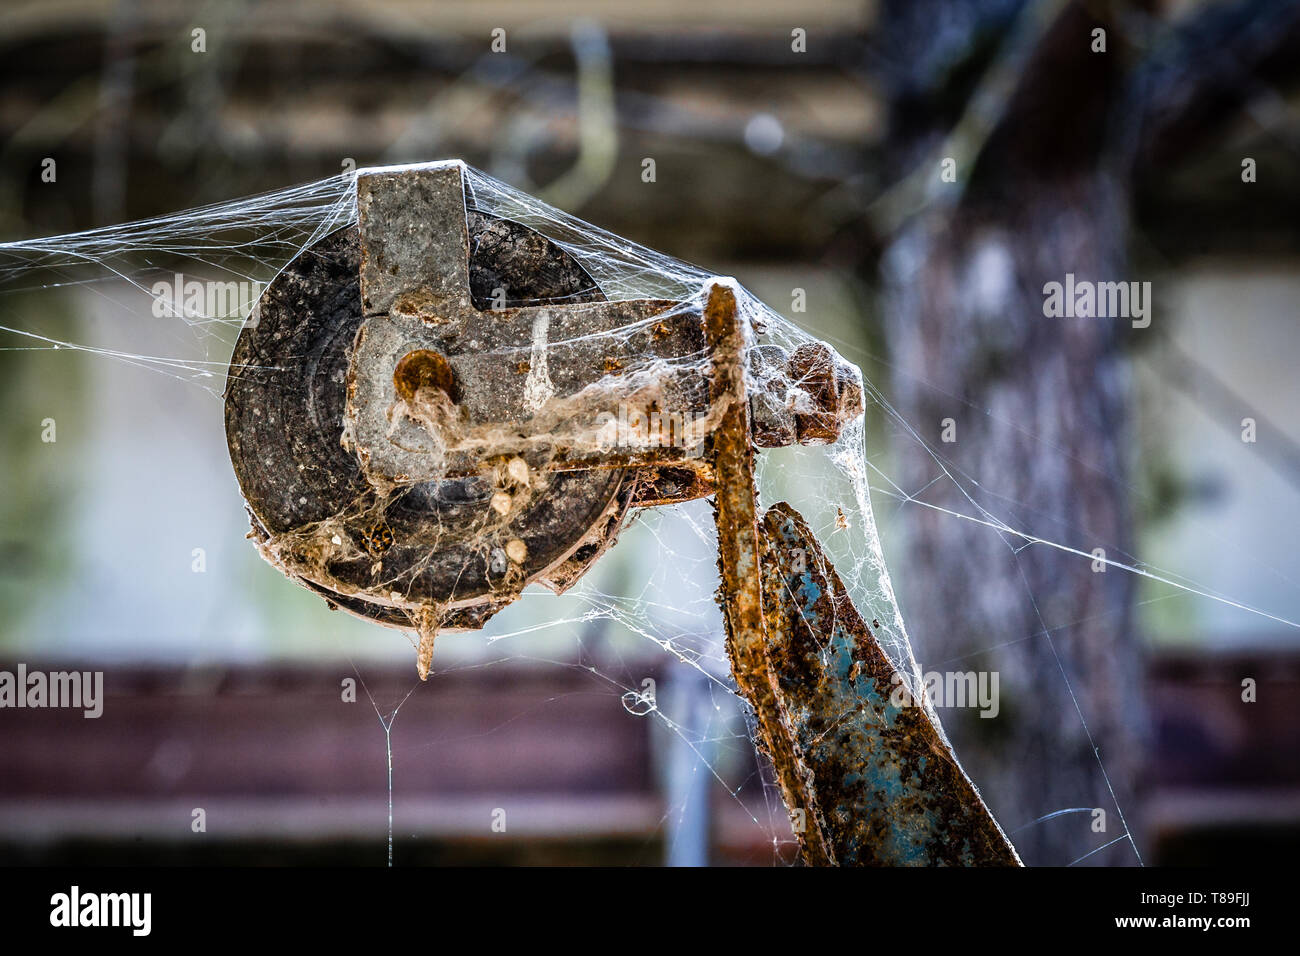 Rusted pulley with spider web in an abandoned farm in Belarus Chernobyl exclusion zone, - Stock Image